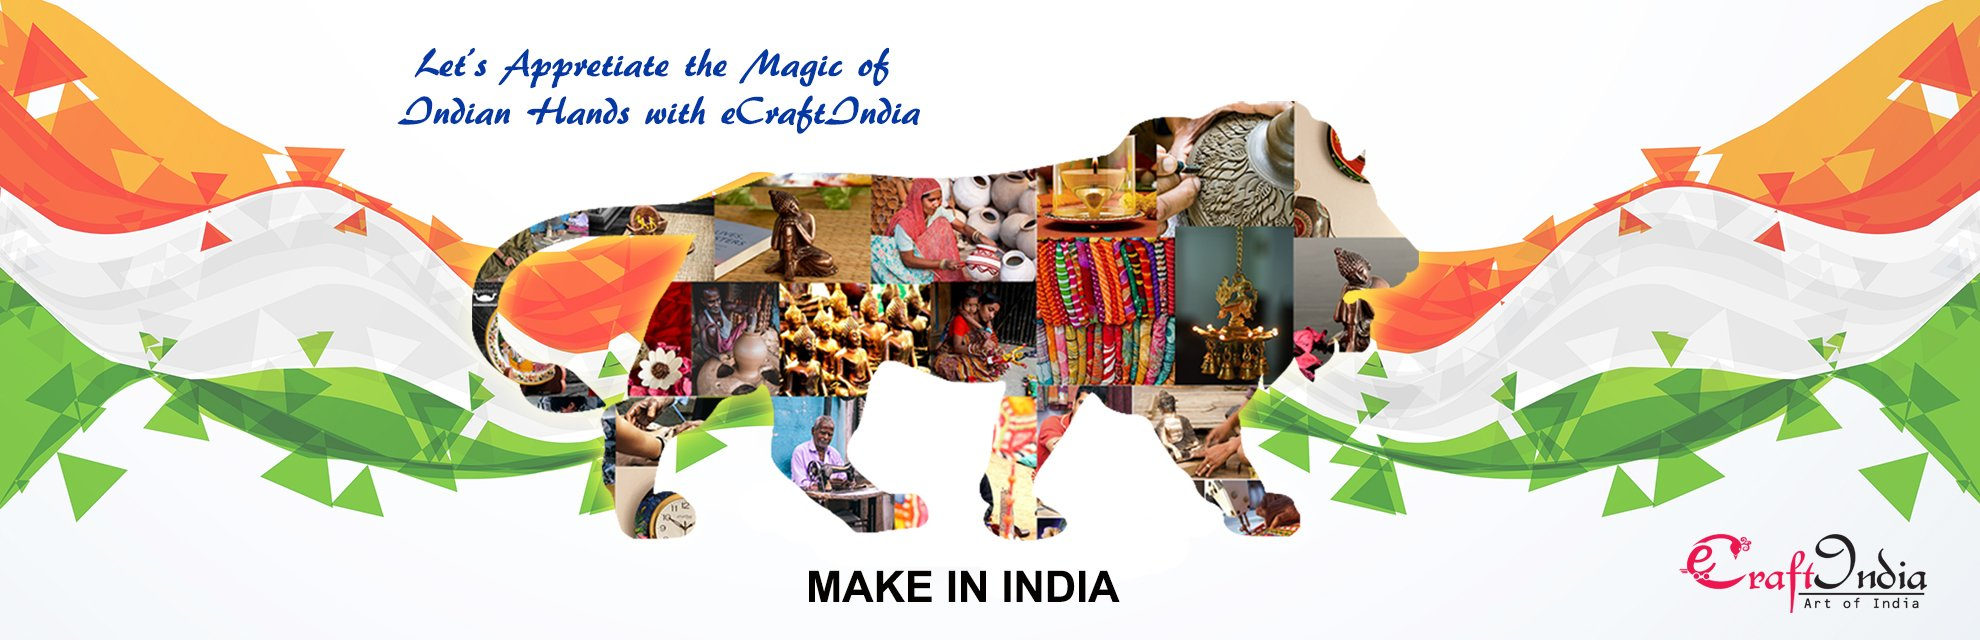 Make in India Handicrafts by eCraftIndia